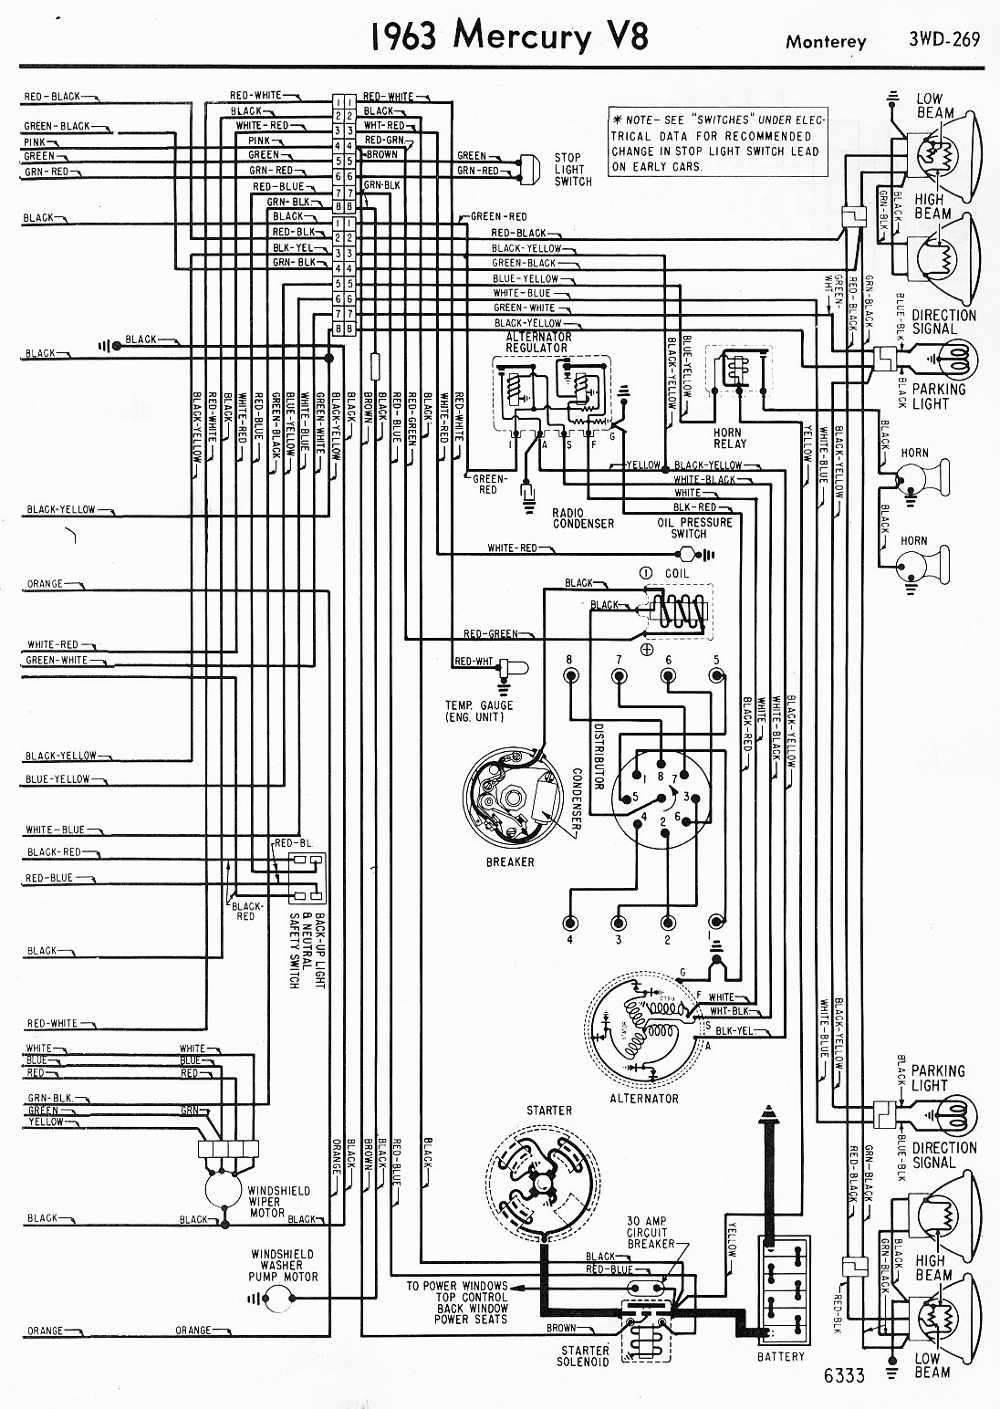 WRG-1635] 1966 Mustang Distributor Wiring Diagram on